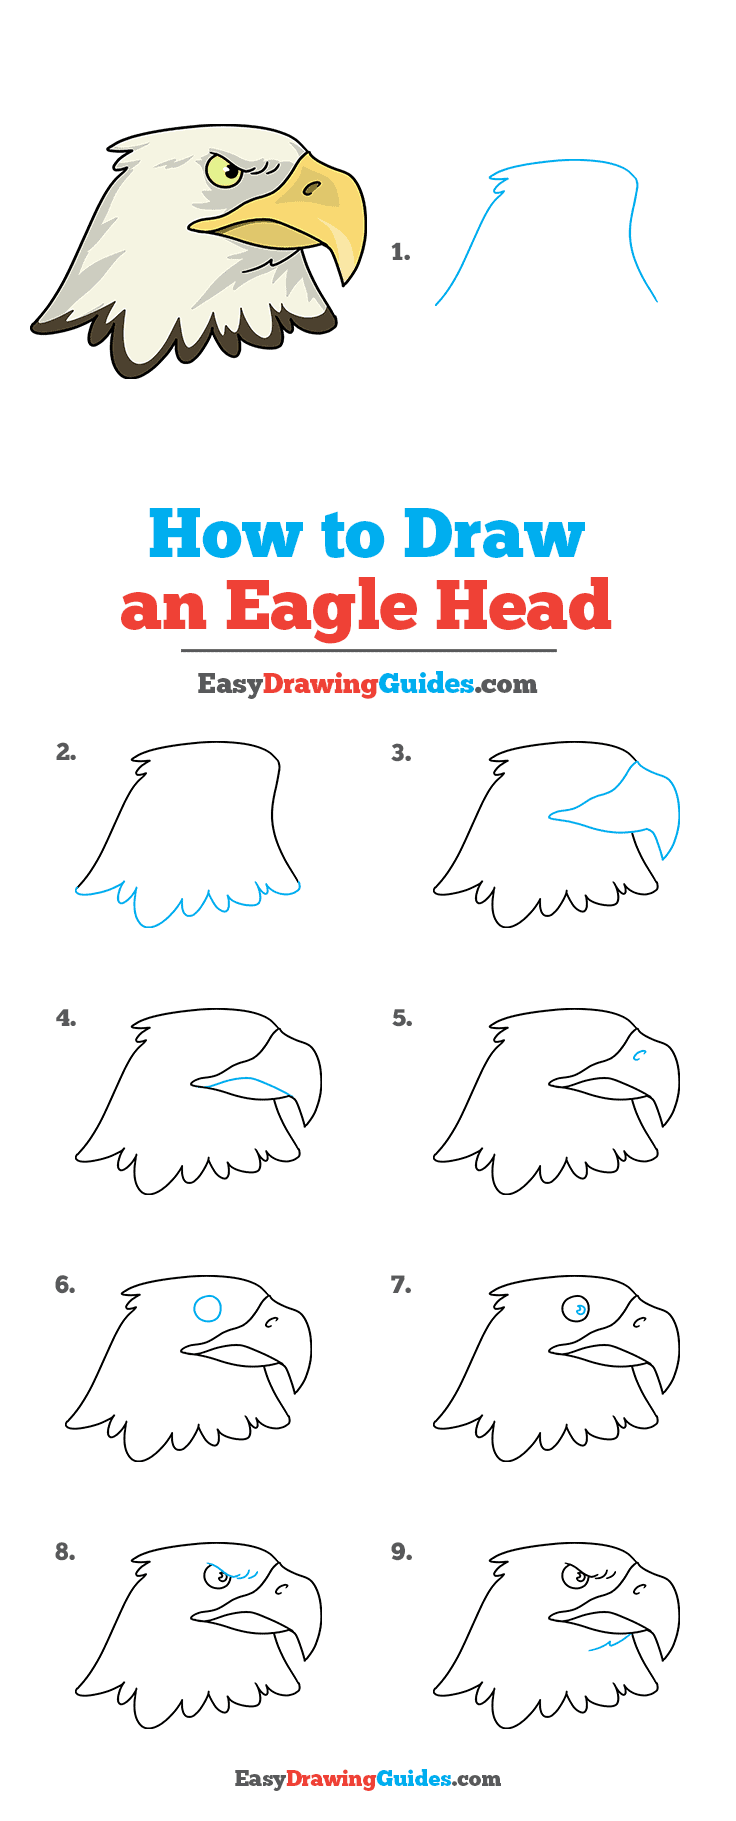 How to Draw Eagle Head